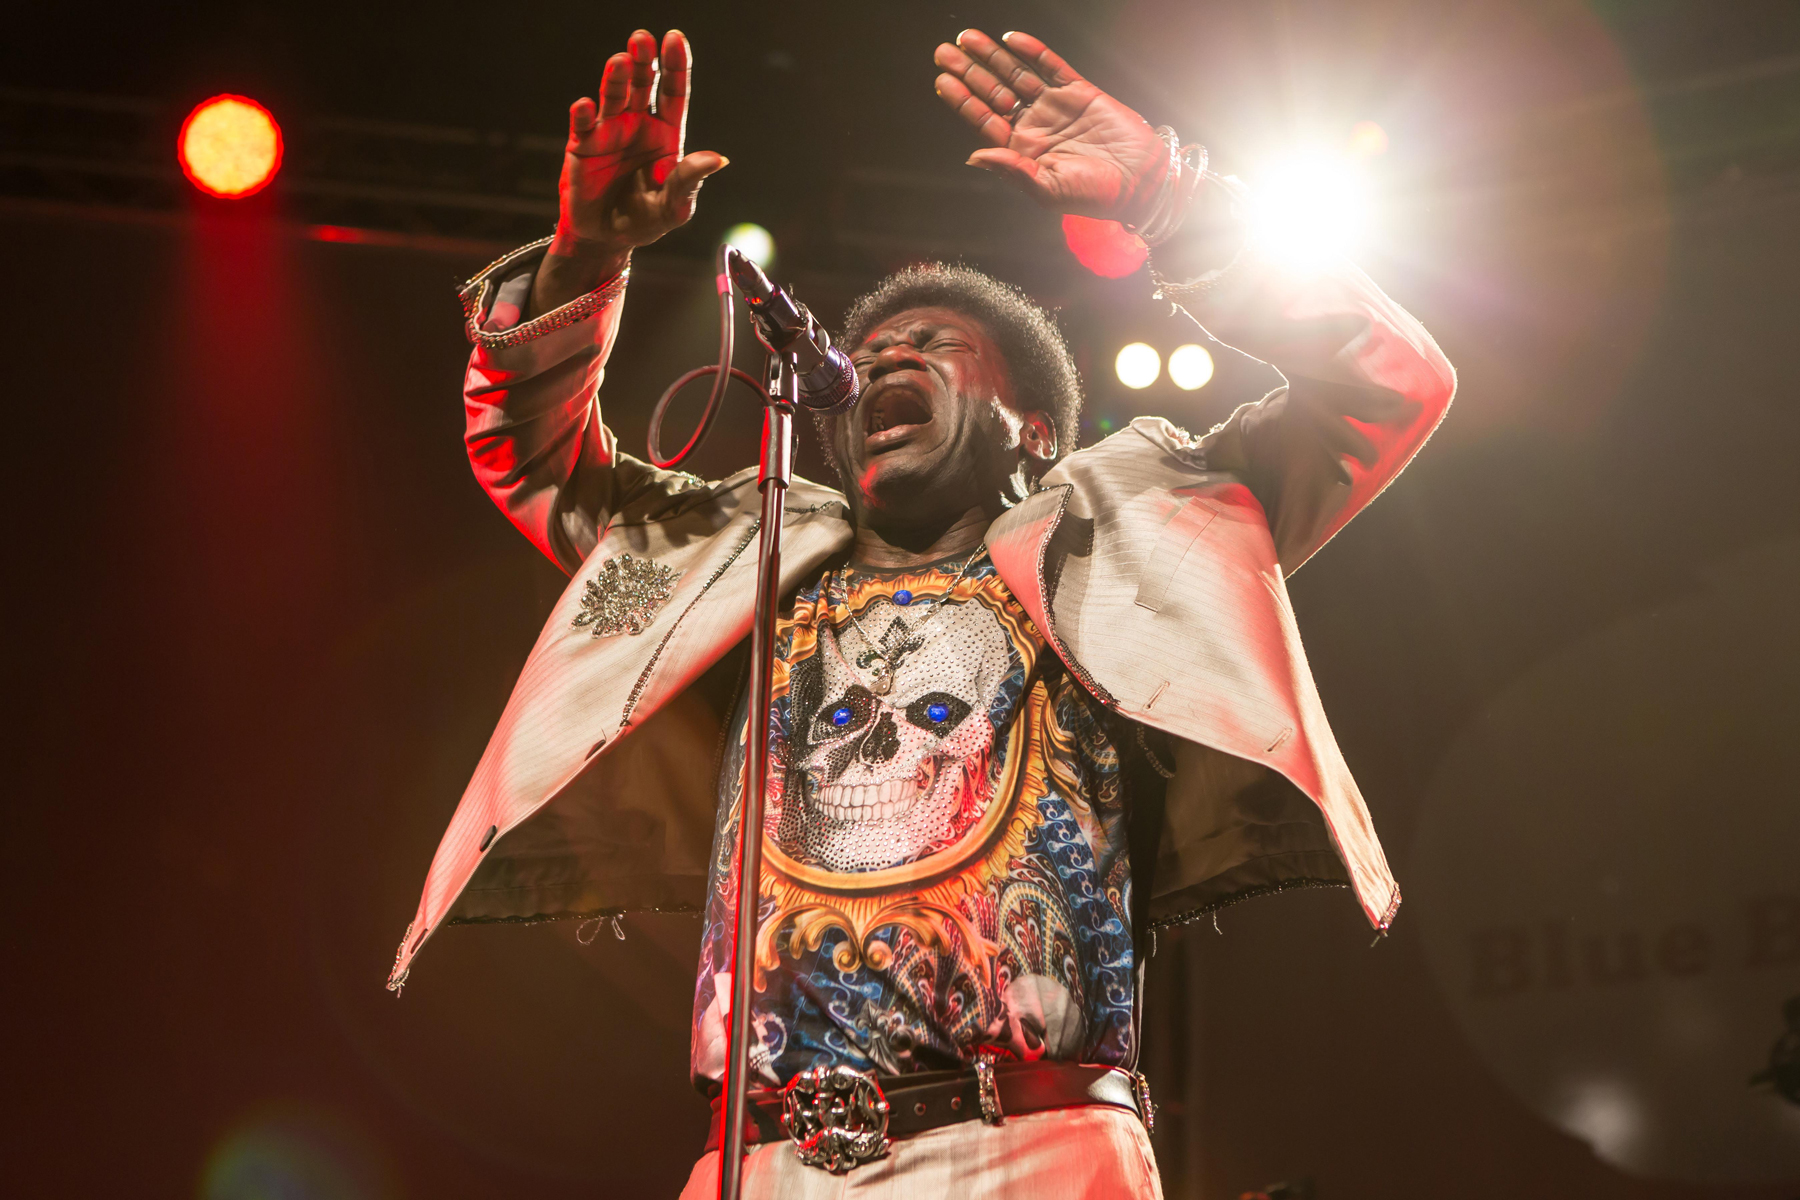 new song from late soul singer charles bradley  u2018lonely as you are u2019  u2013 rolling stone